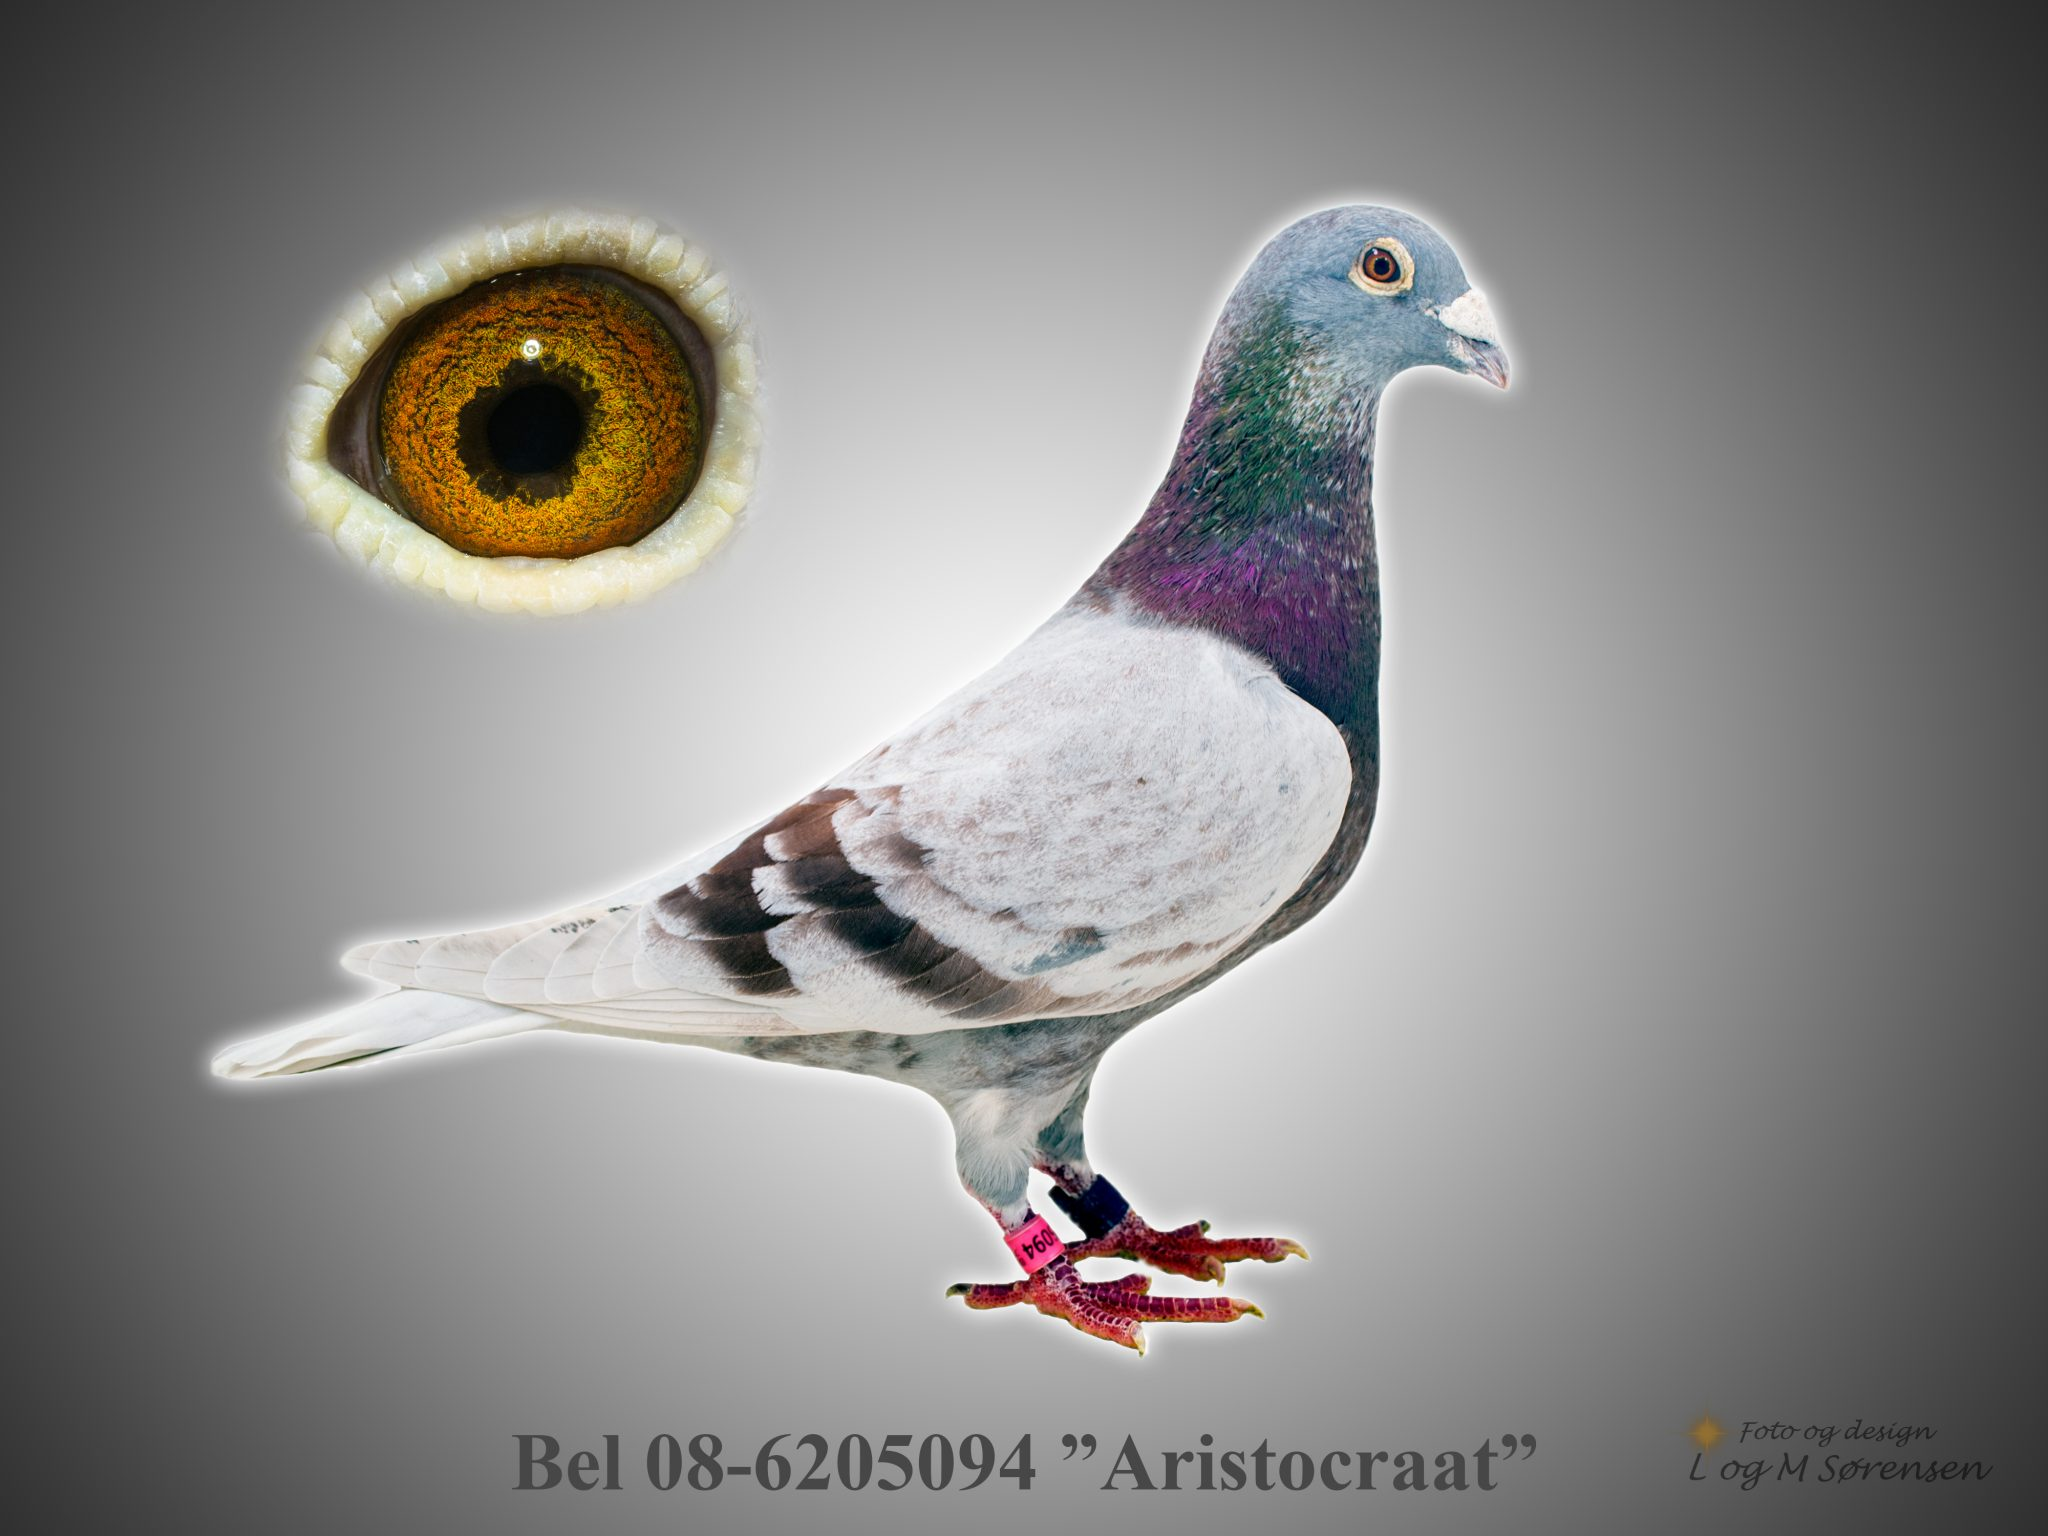 "Rede 18 Bel 08-6205094 ""Aristocraat"""